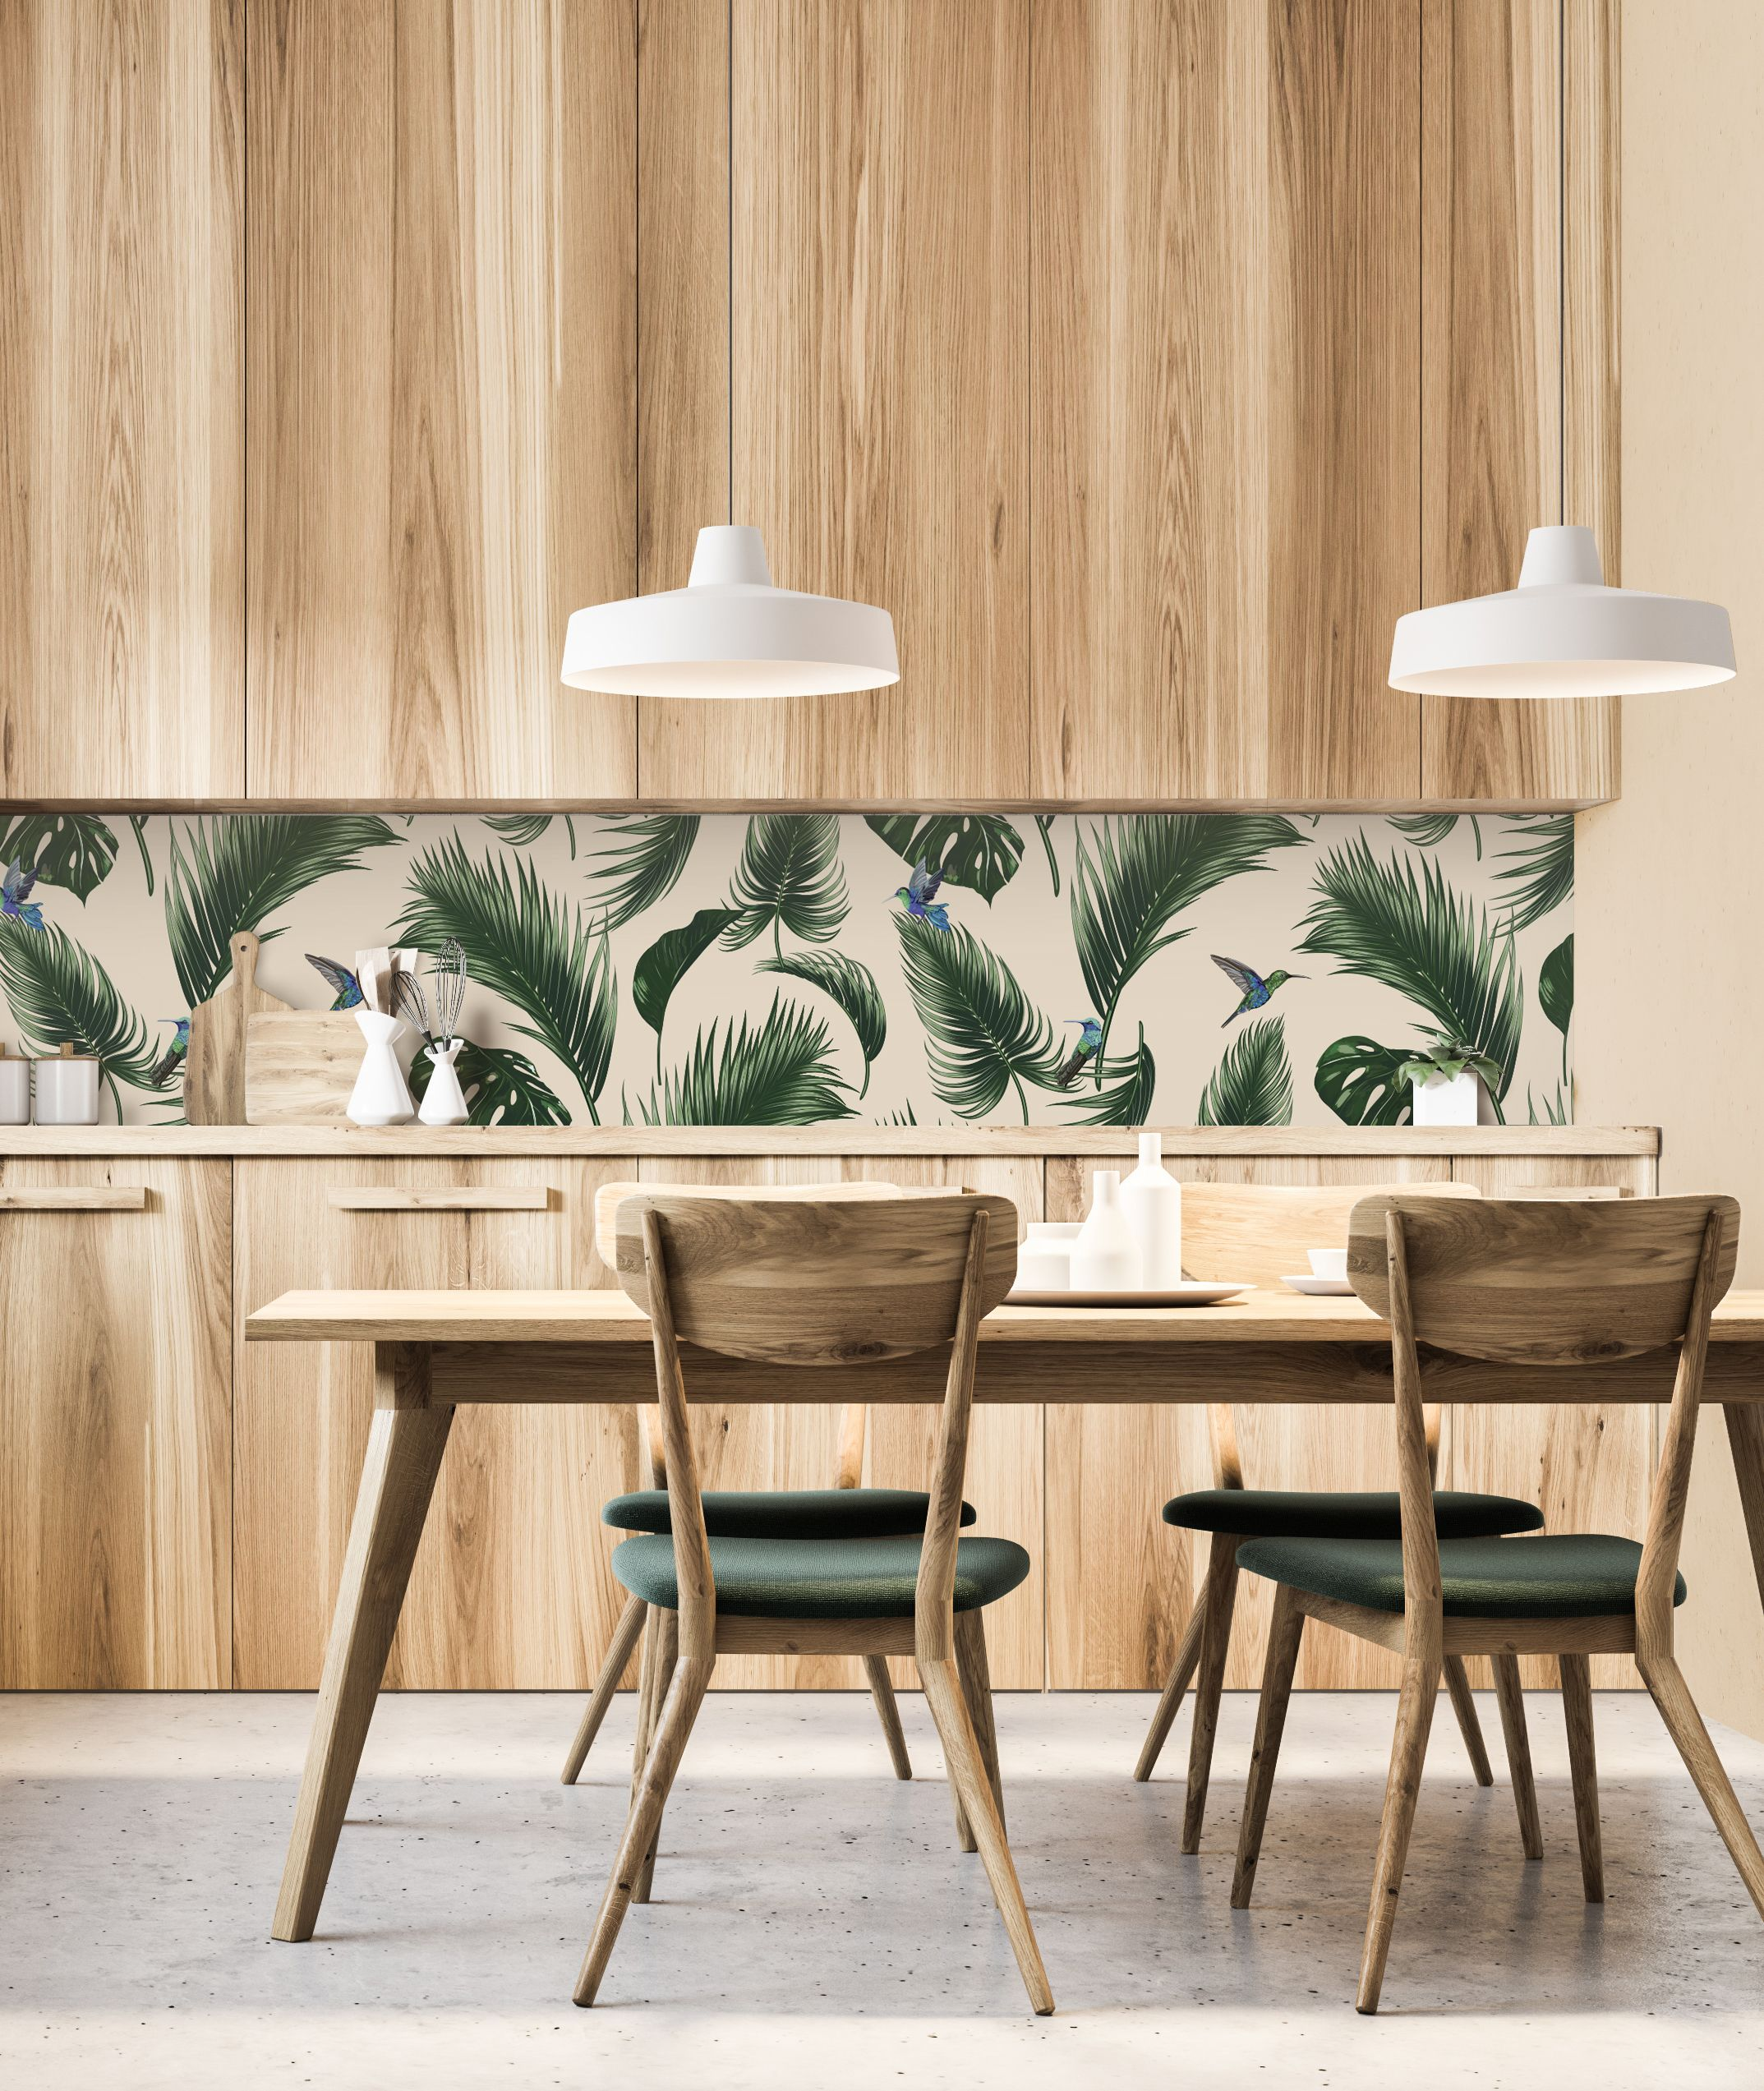 18 Tropical Dining Room Designs Ideas: Themed Dining Room. Vertical Wood